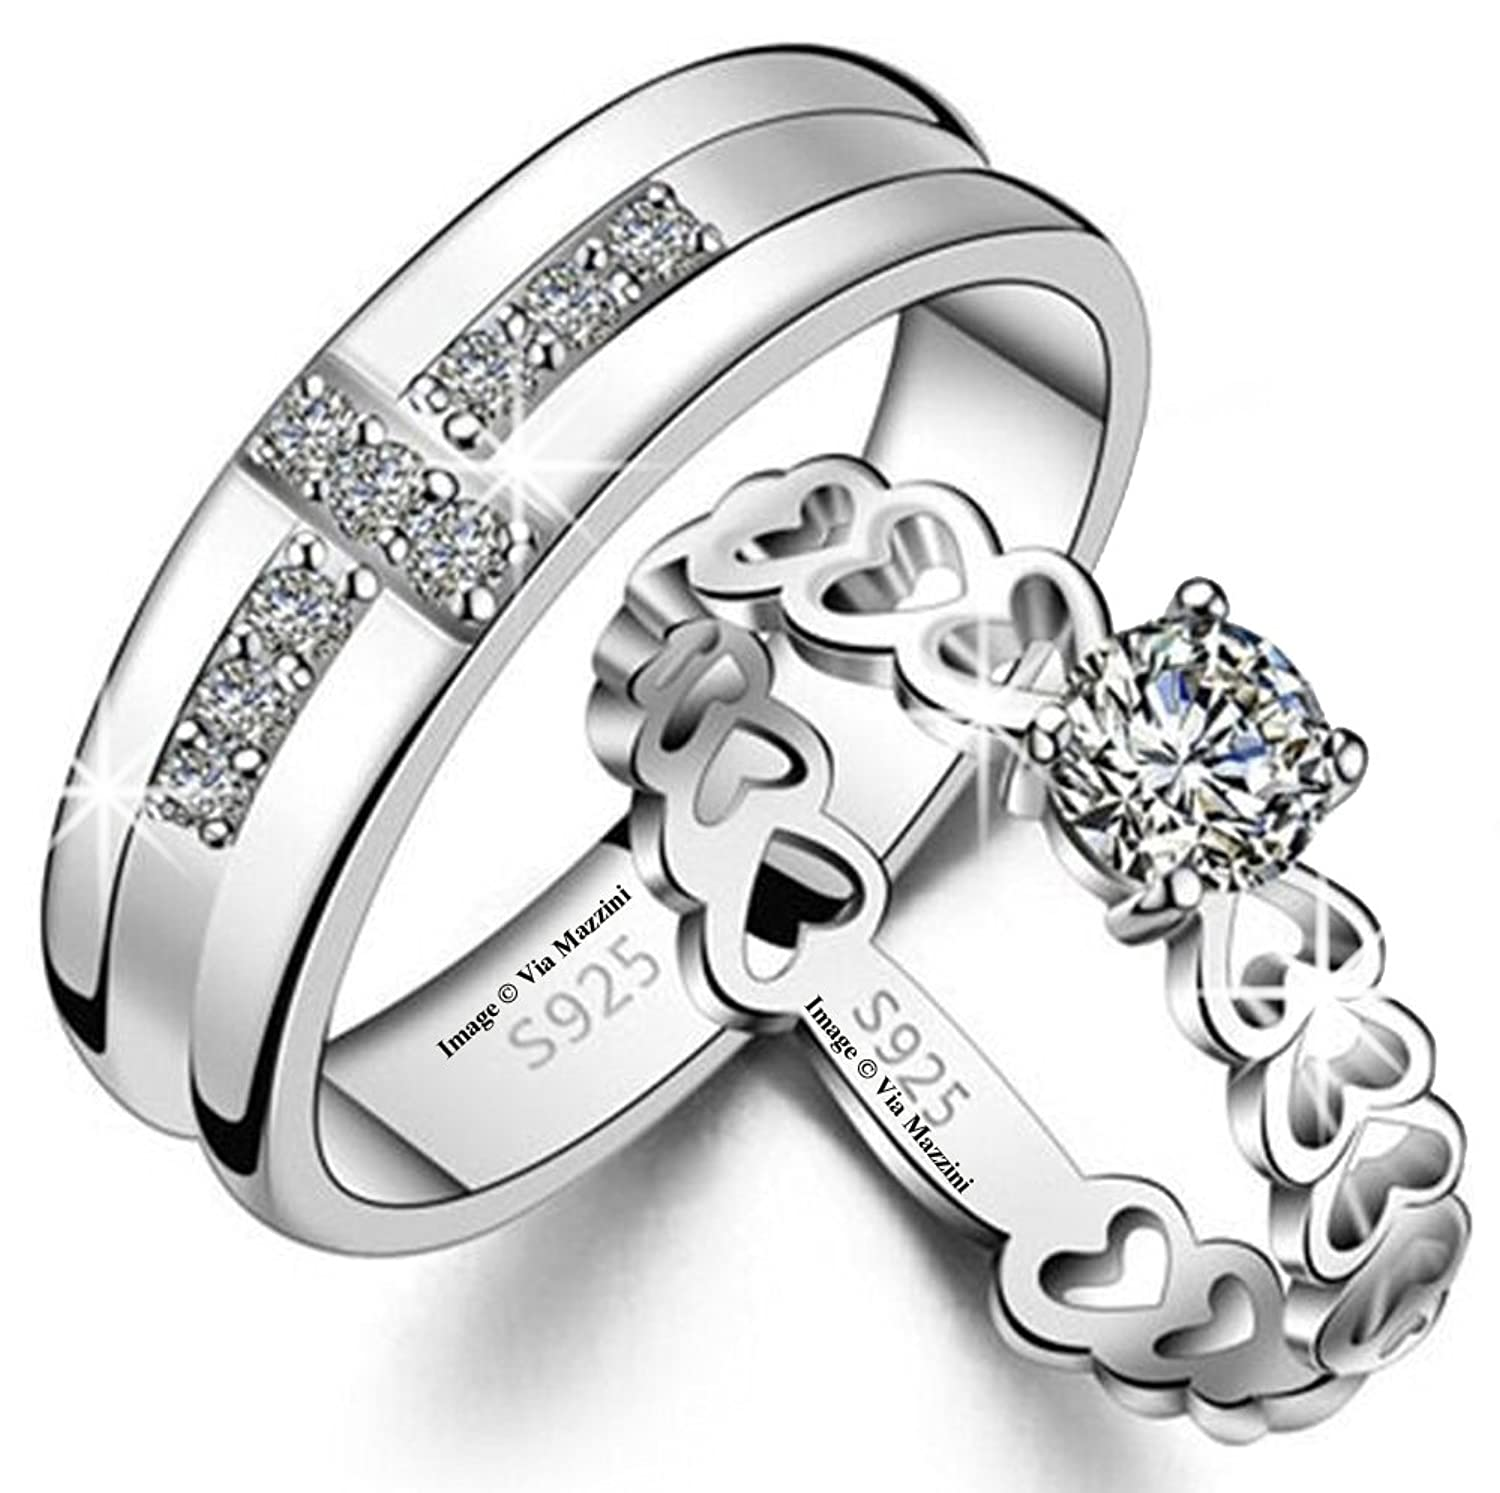 Via Mazzini 925 Silver Plated Love Birds Crystal Couple Rings For